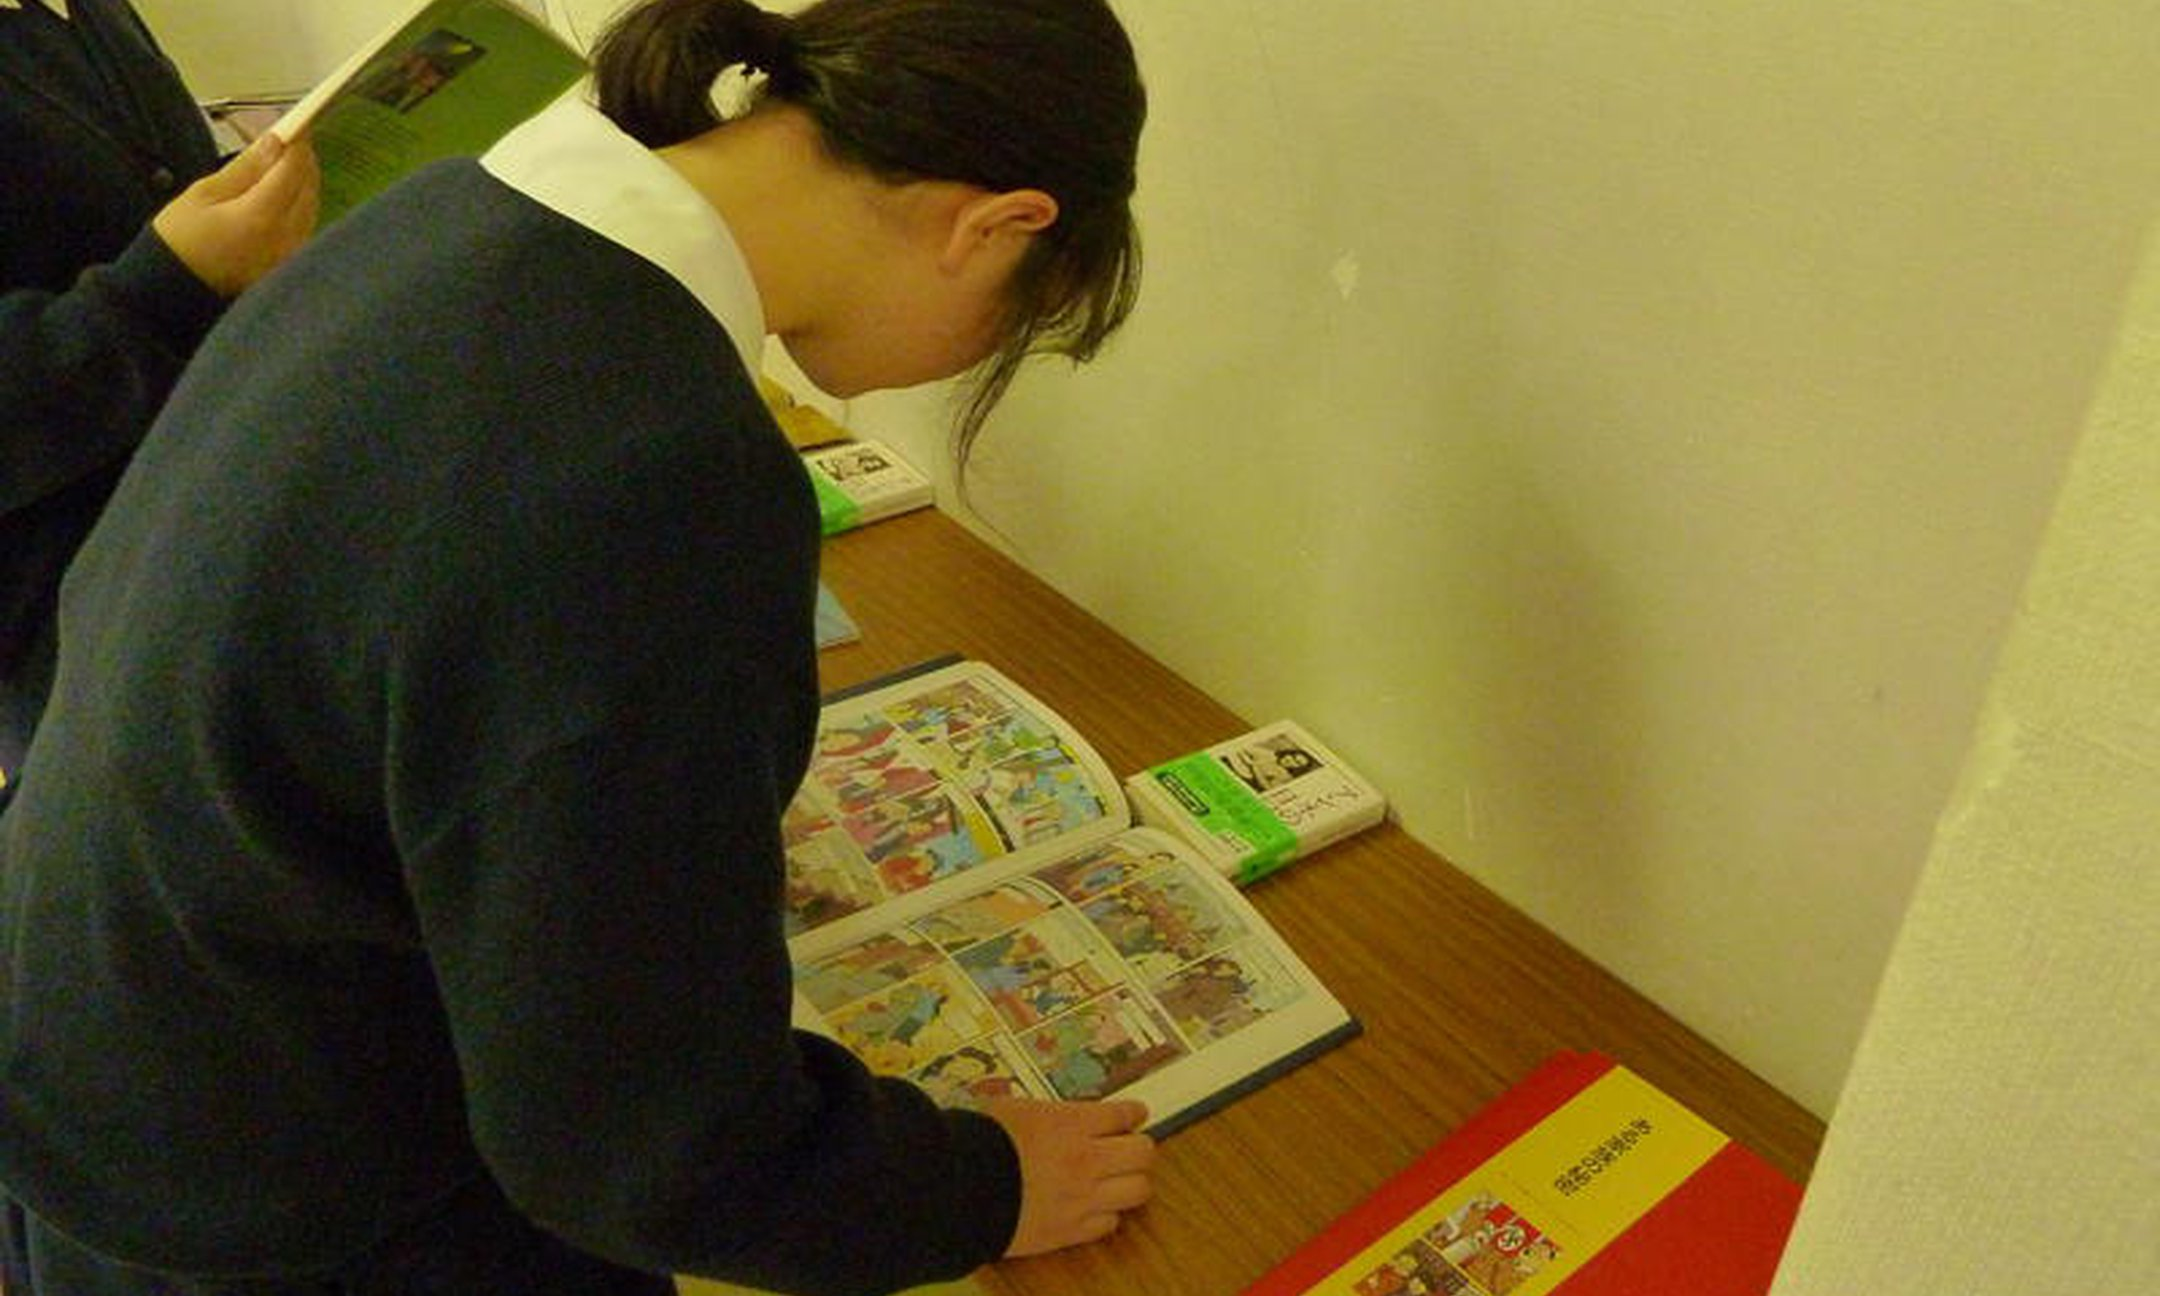 Educational materials in Japanese